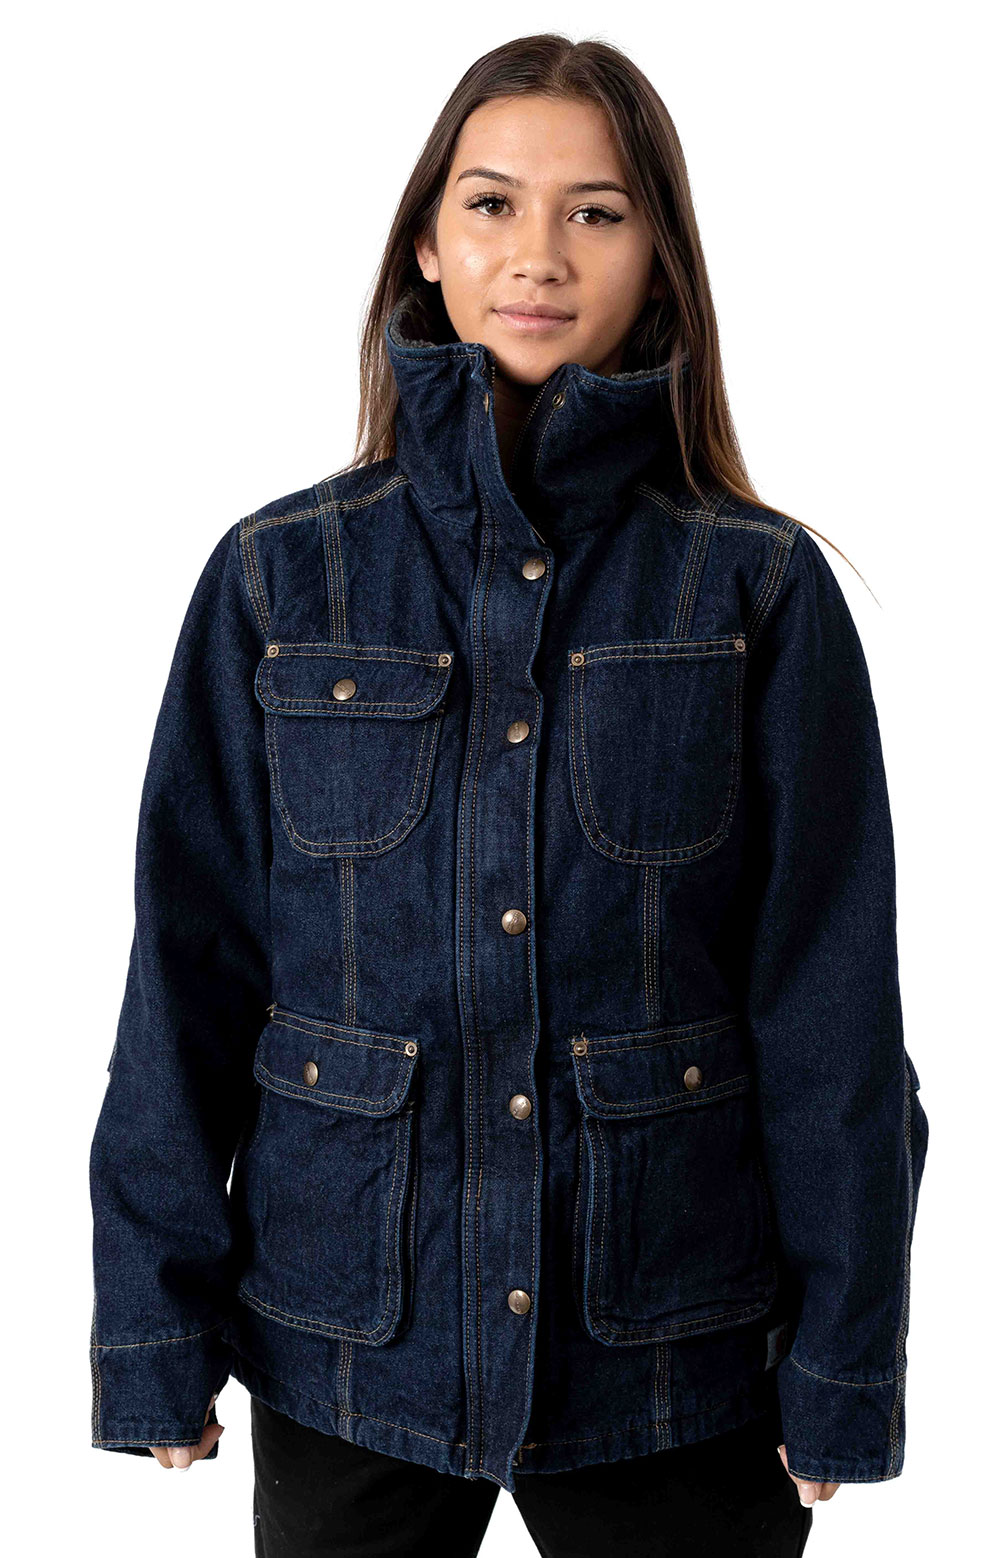 (102247) Weathered Duck Wesley Coat - Heritage Blue